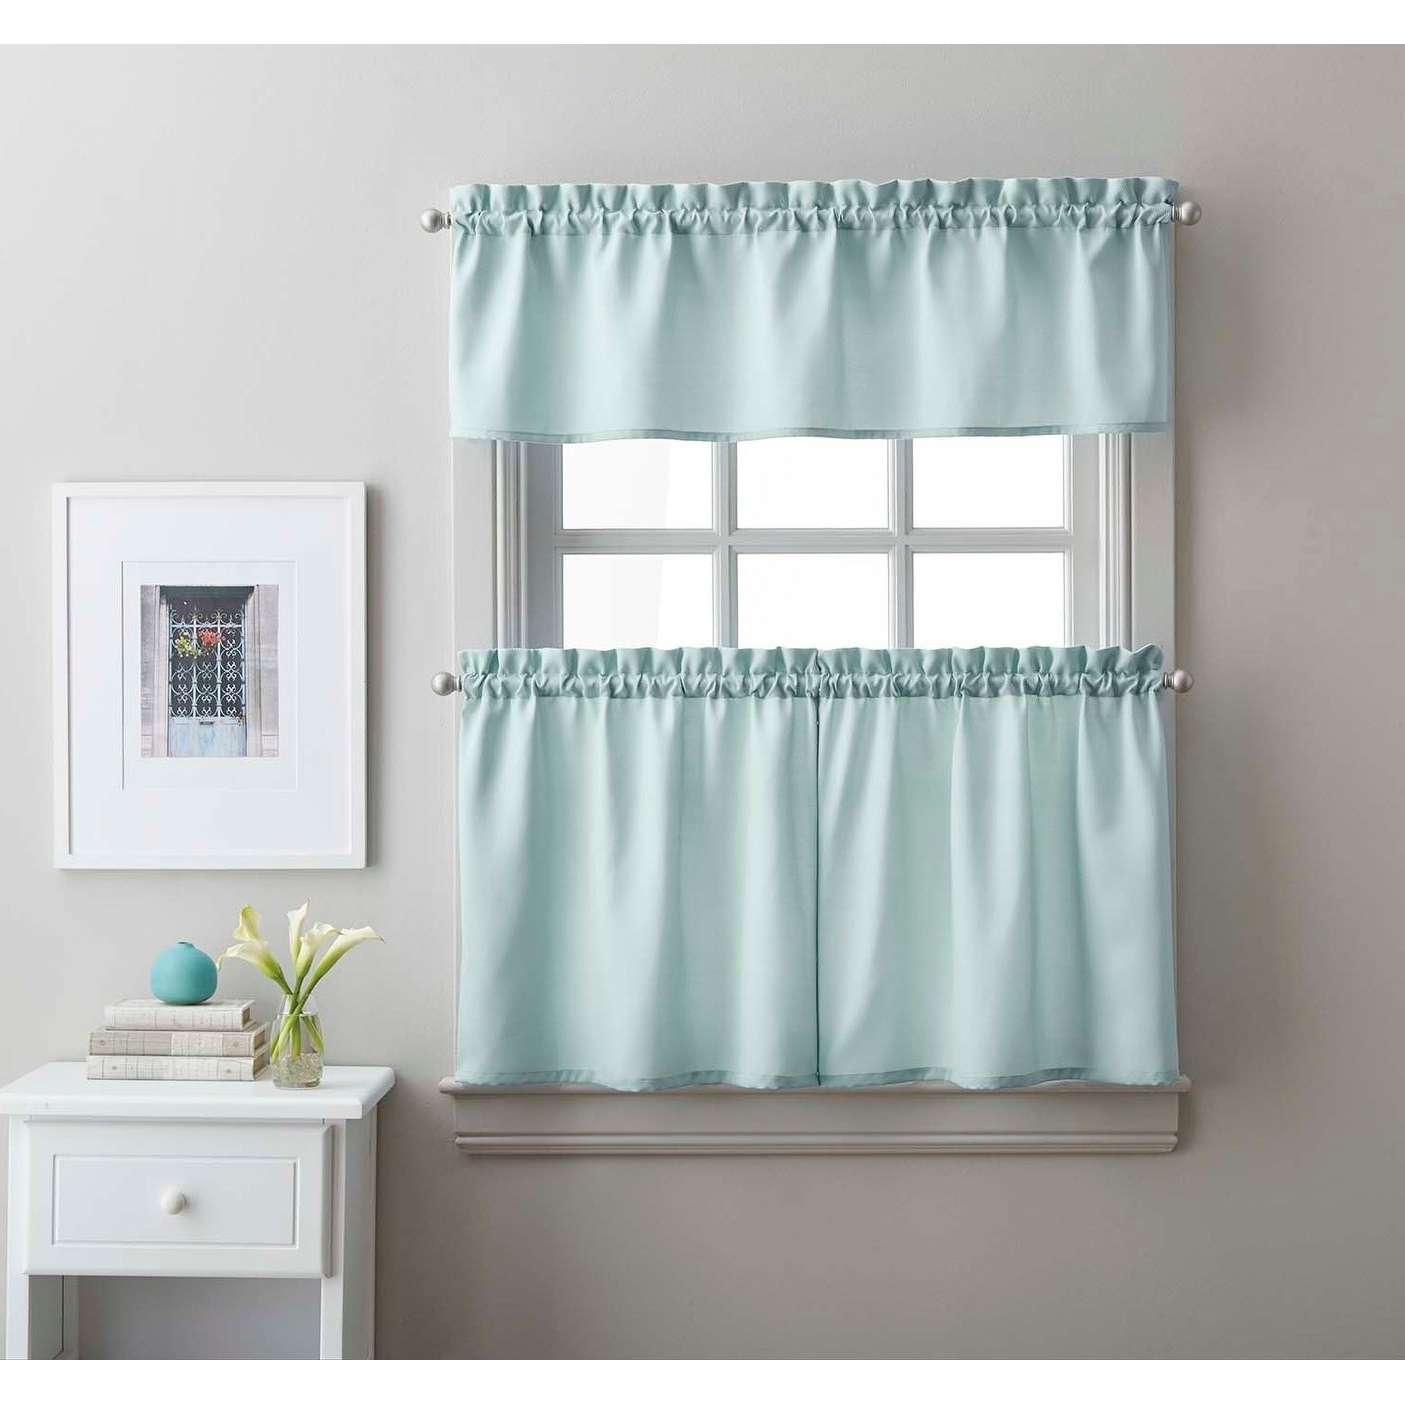 Most Current Twill 3 Piece Kitchen Curtain Tier Set Throughout Microfiber 3 Piece Kitchen Curtain Valance And Tiers Sets (View 10 of 20)